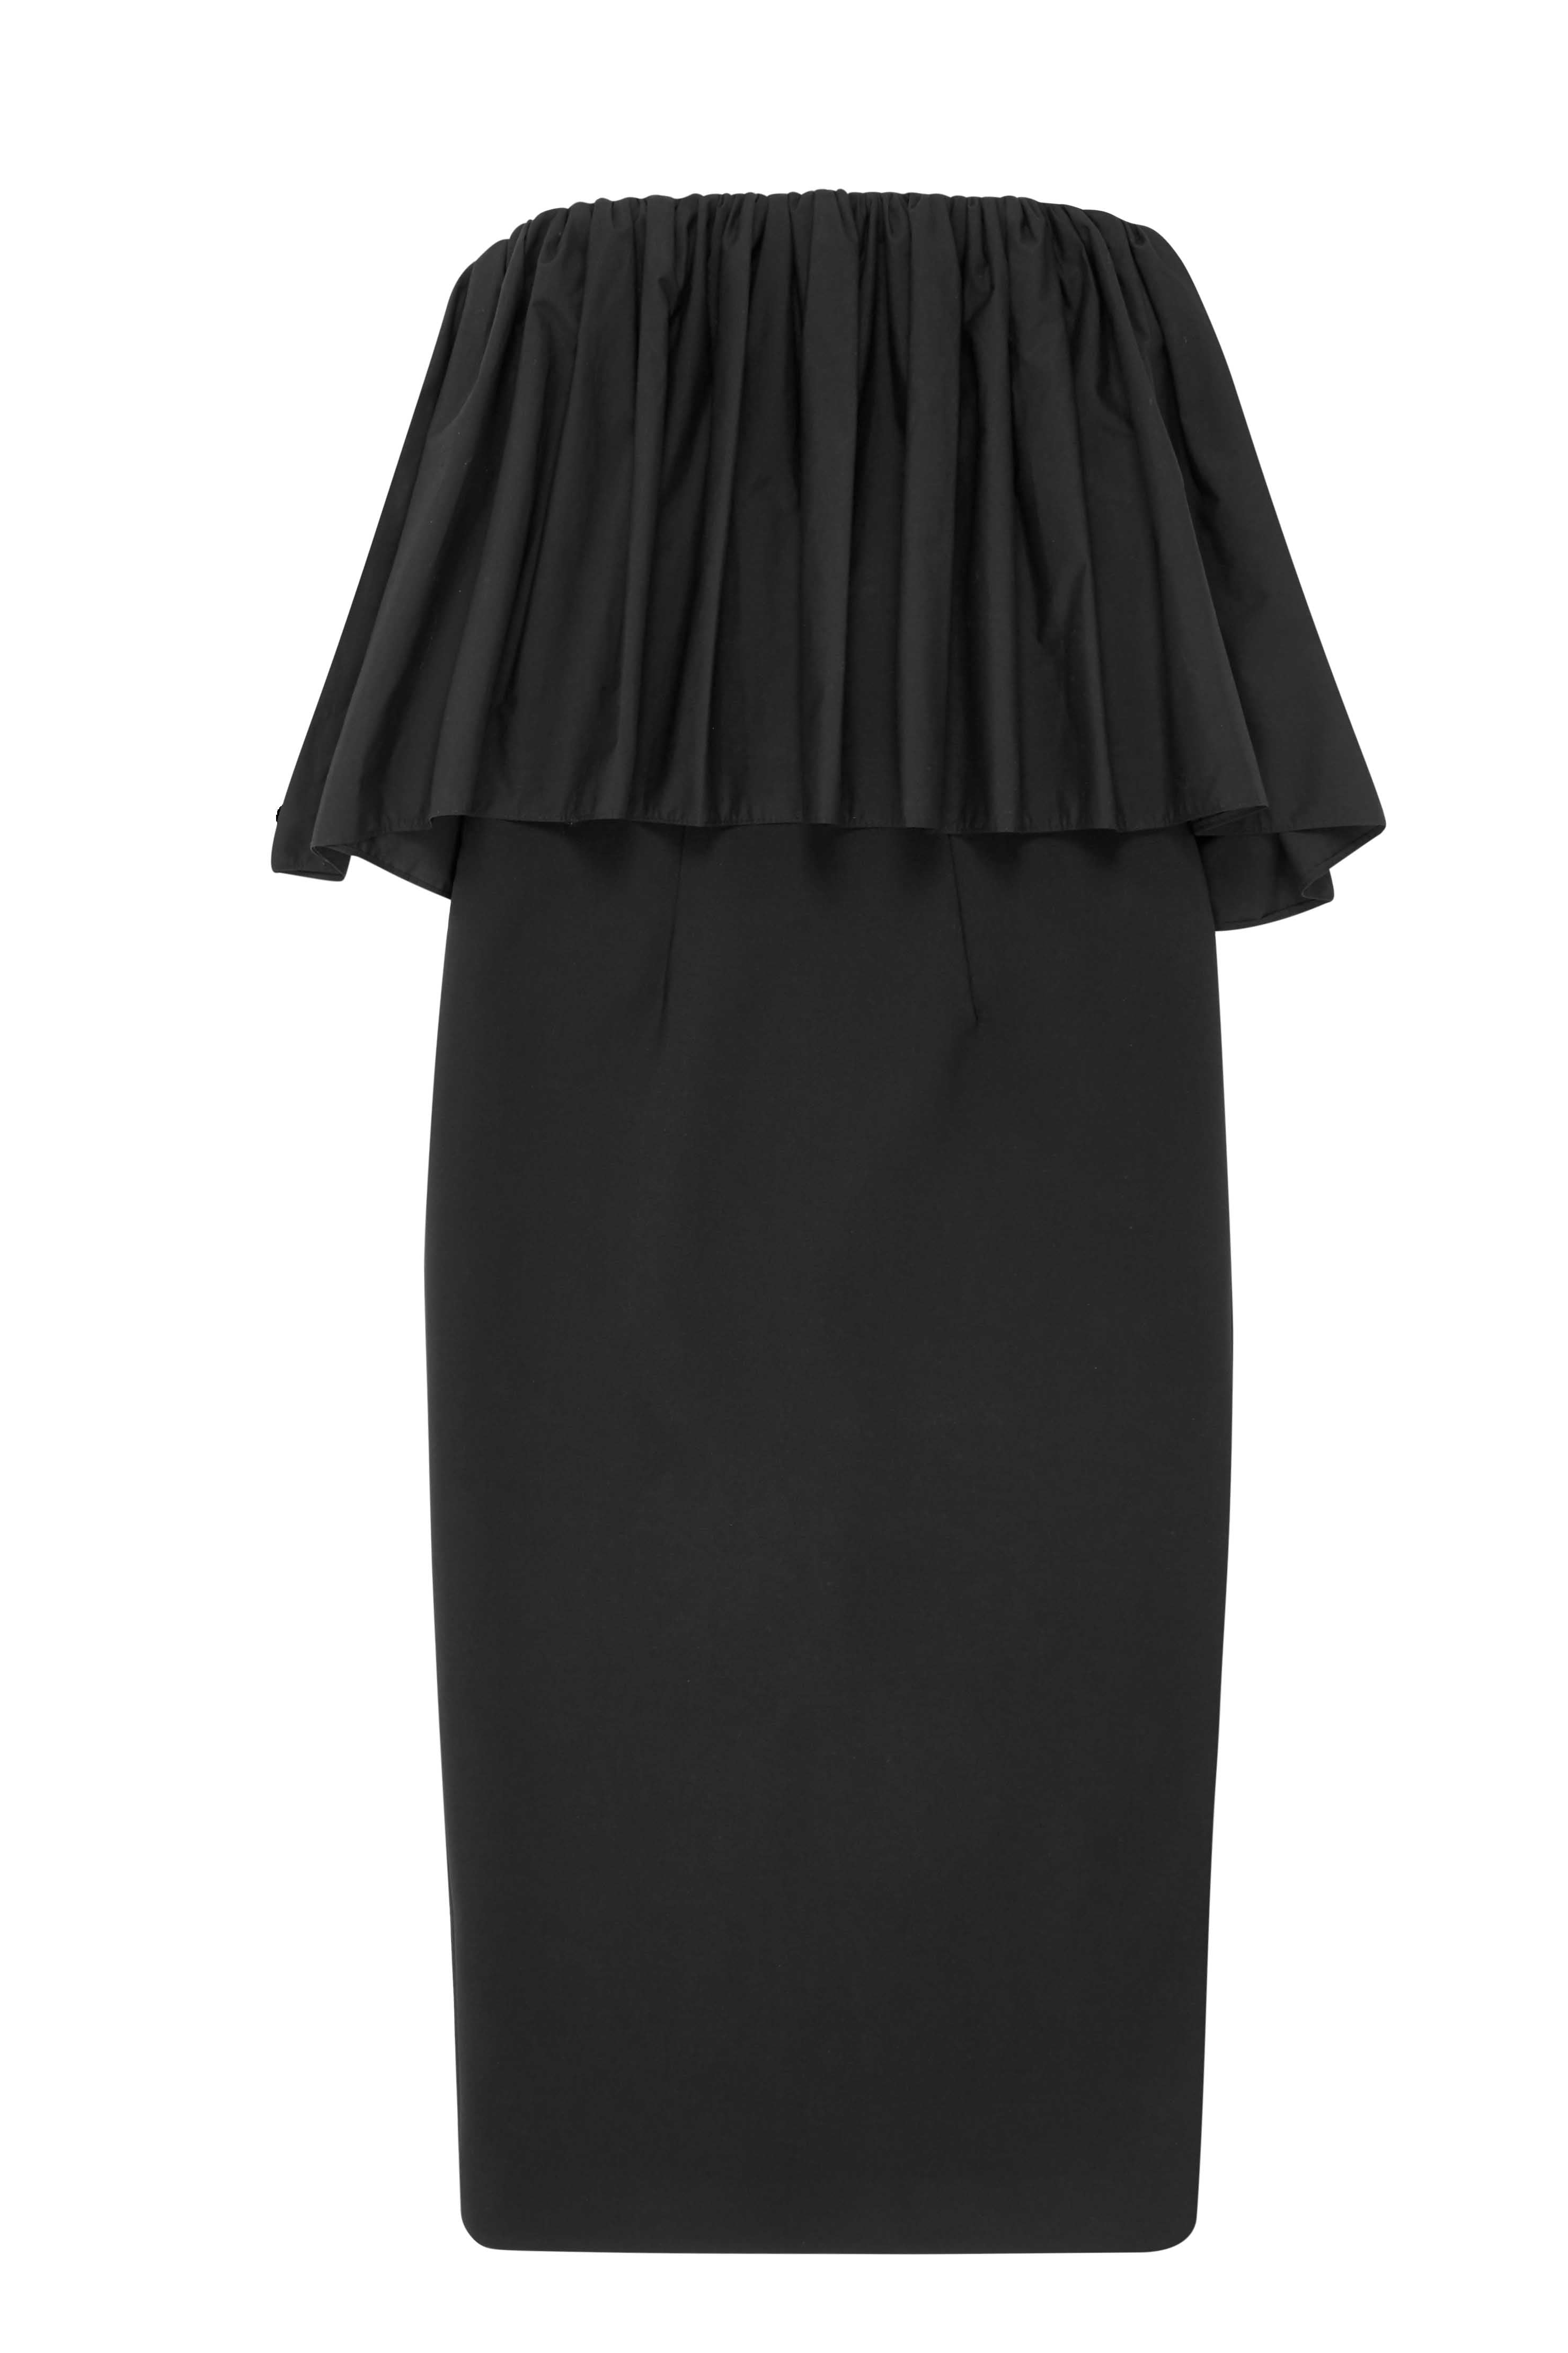 By Johnny Cotton Gather Strapless Dress Black